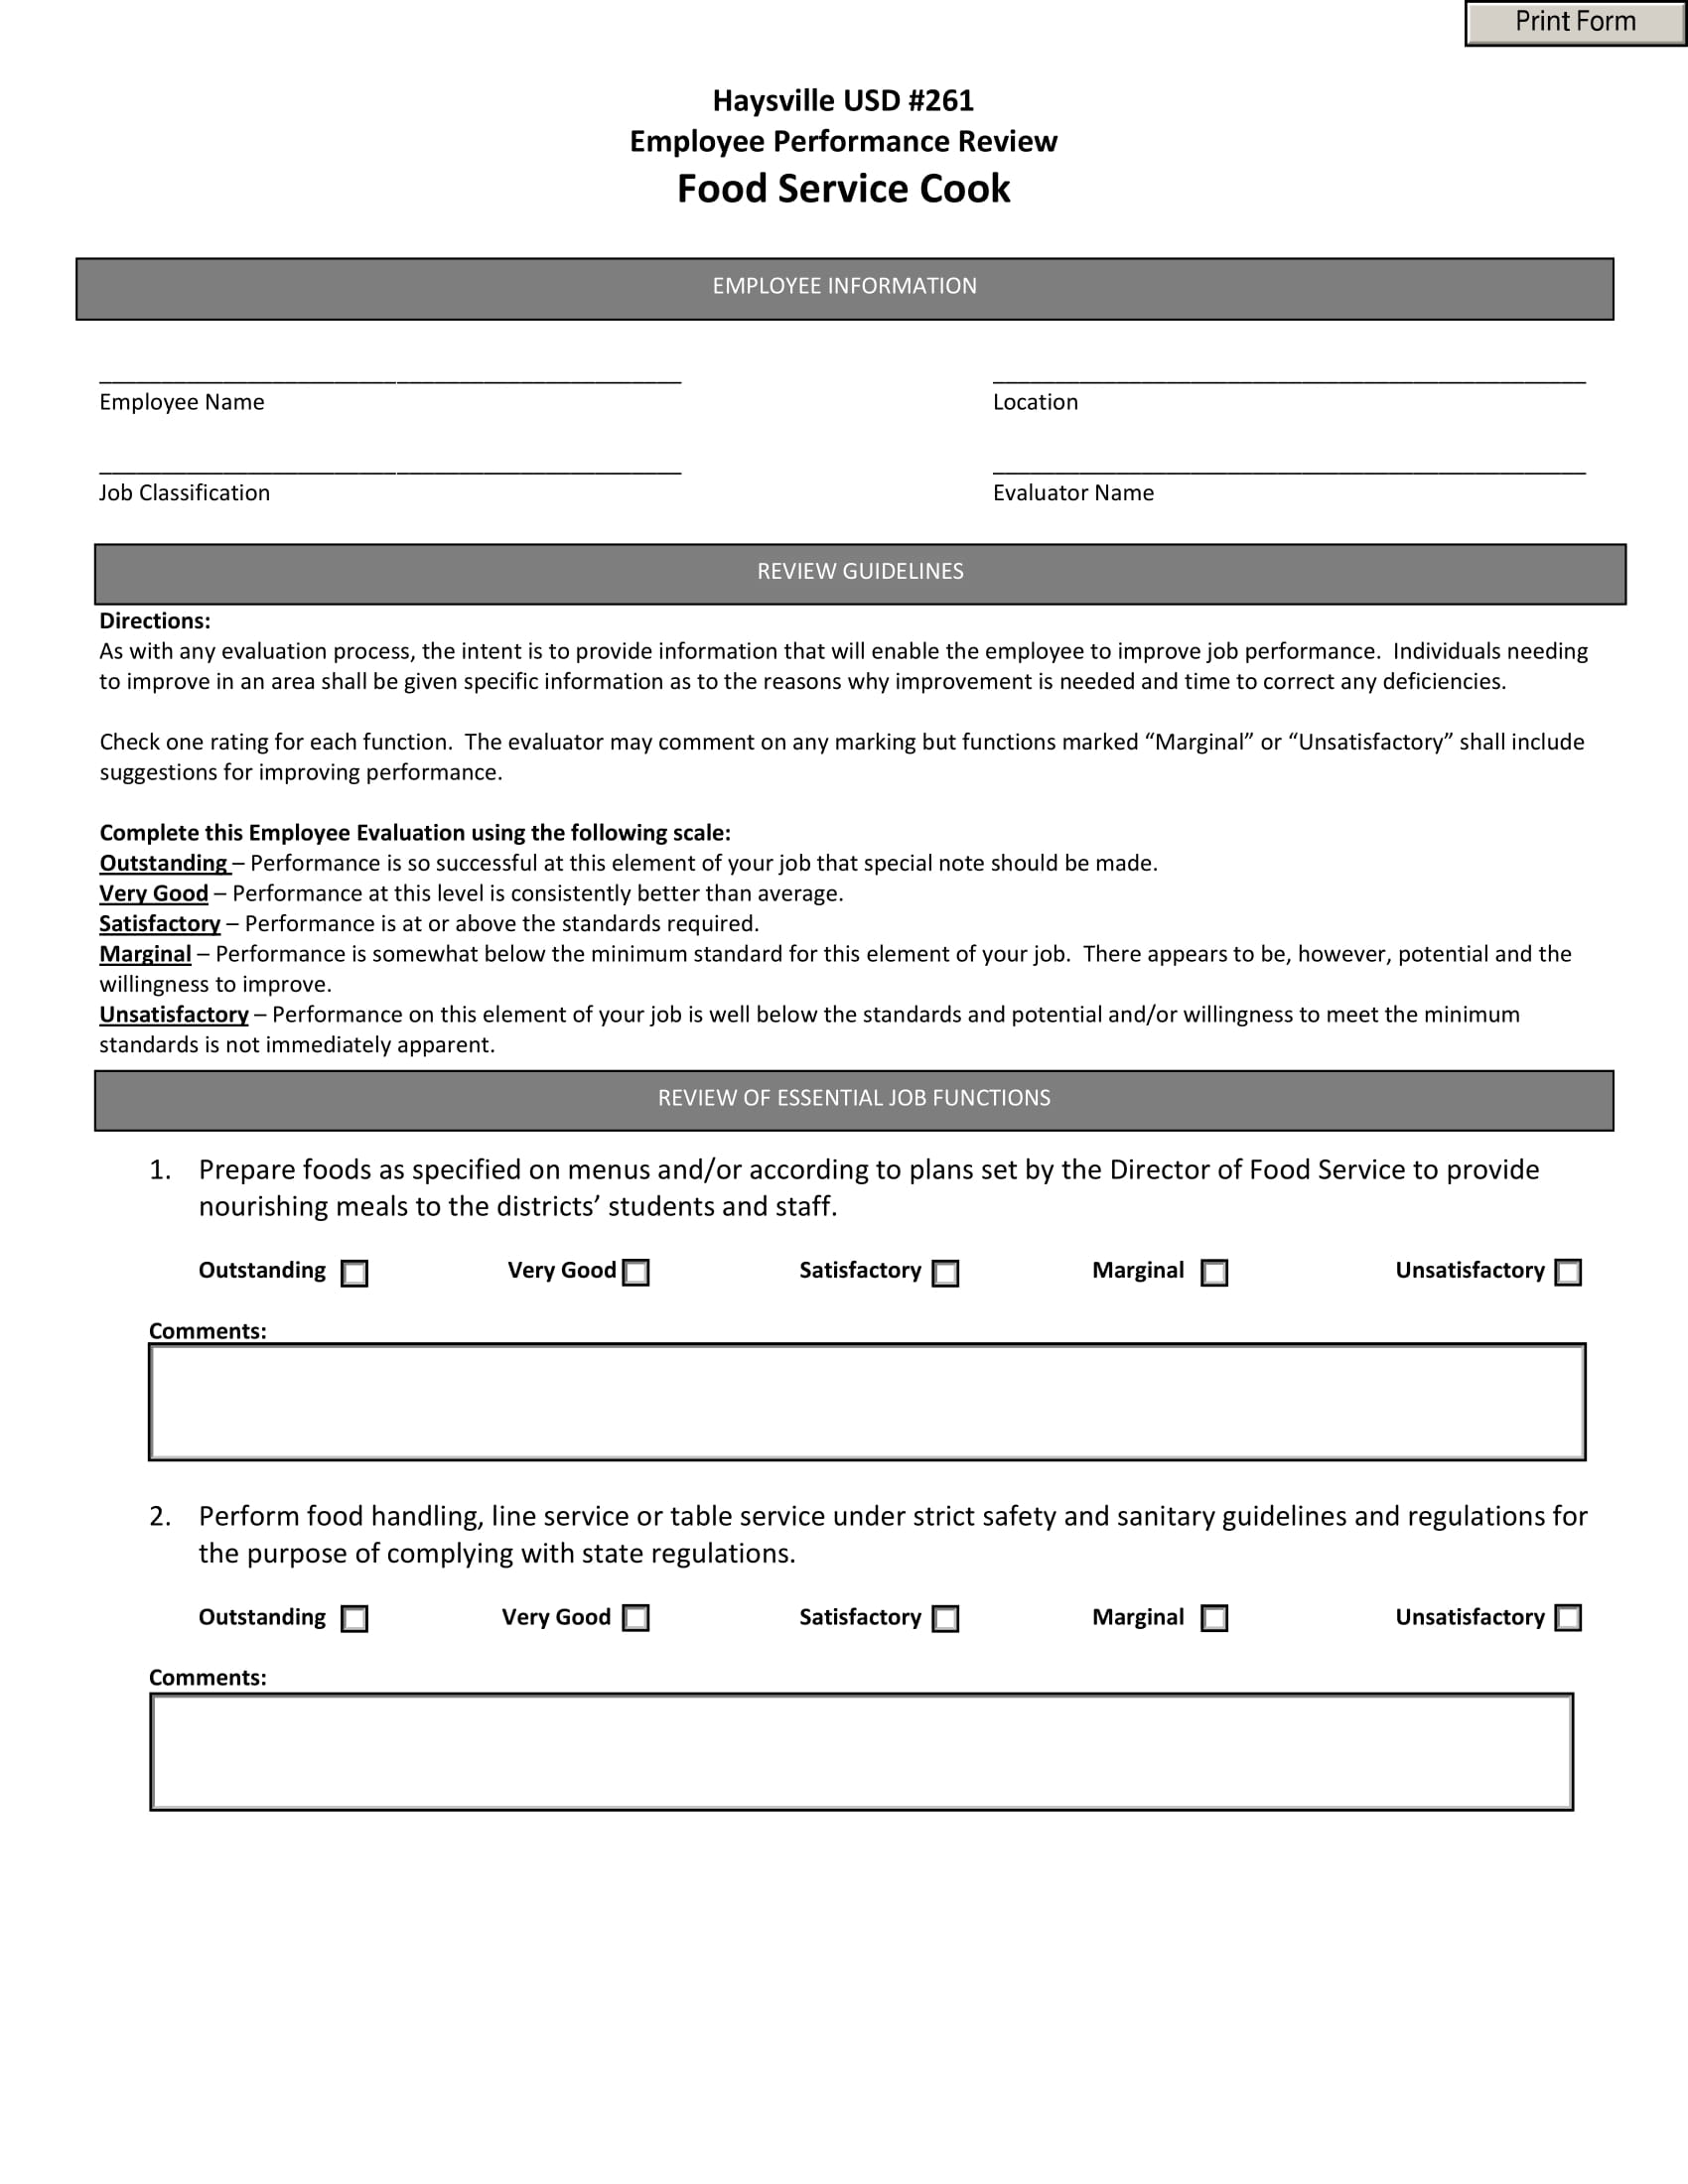 food service cook performance evaluation form 1